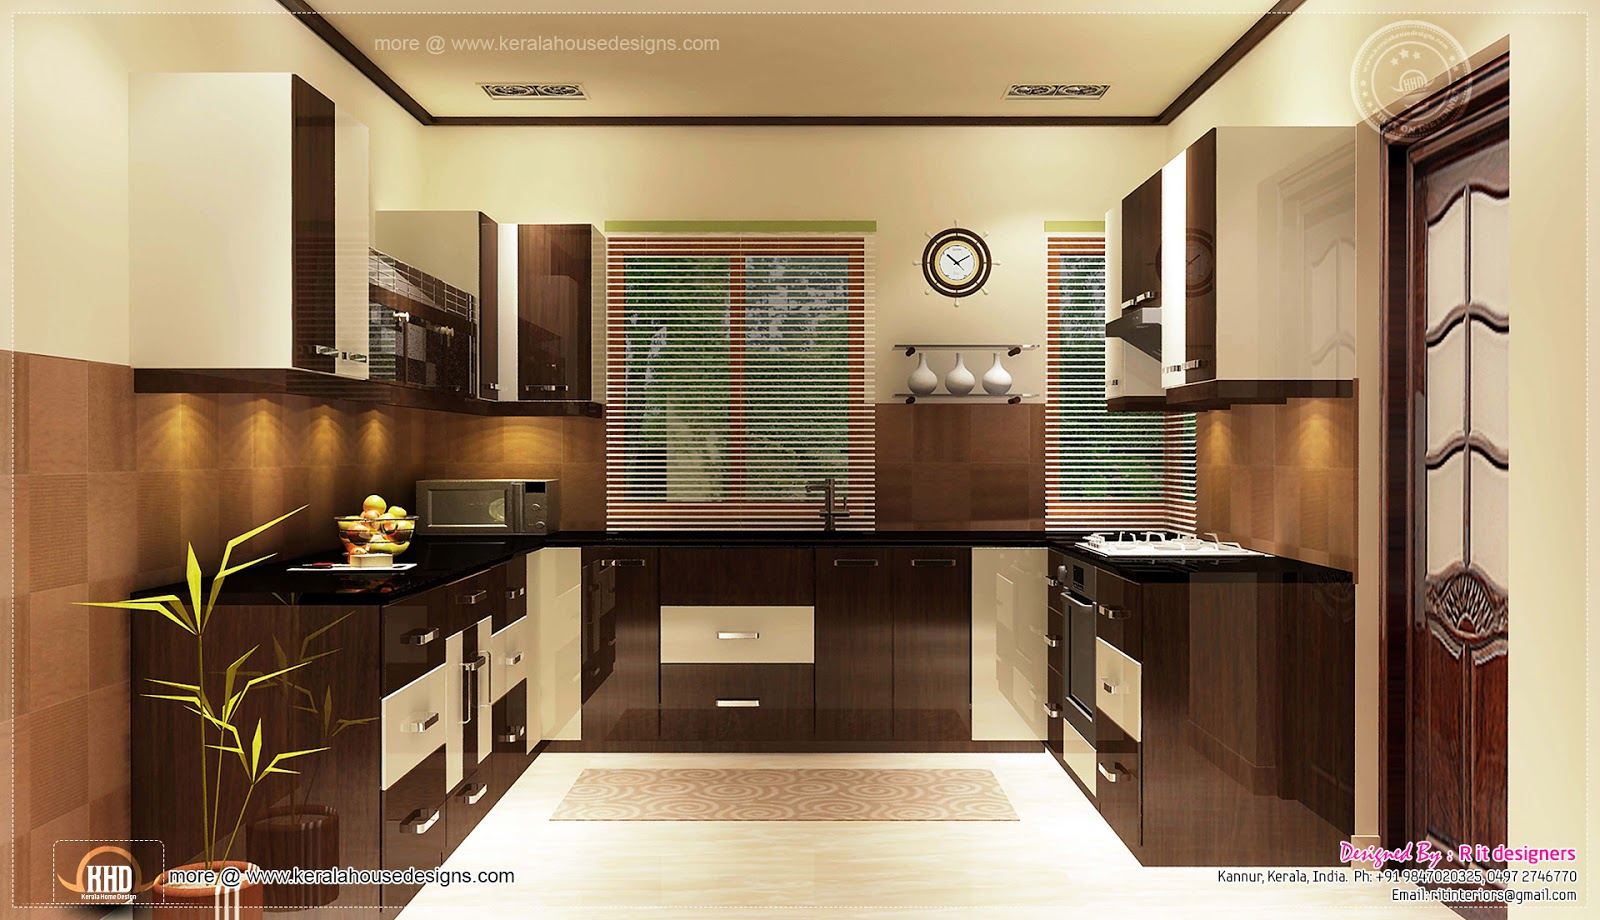 home interior designs by rit designers kerala home design and floor plans. Black Bedroom Furniture Sets. Home Design Ideas